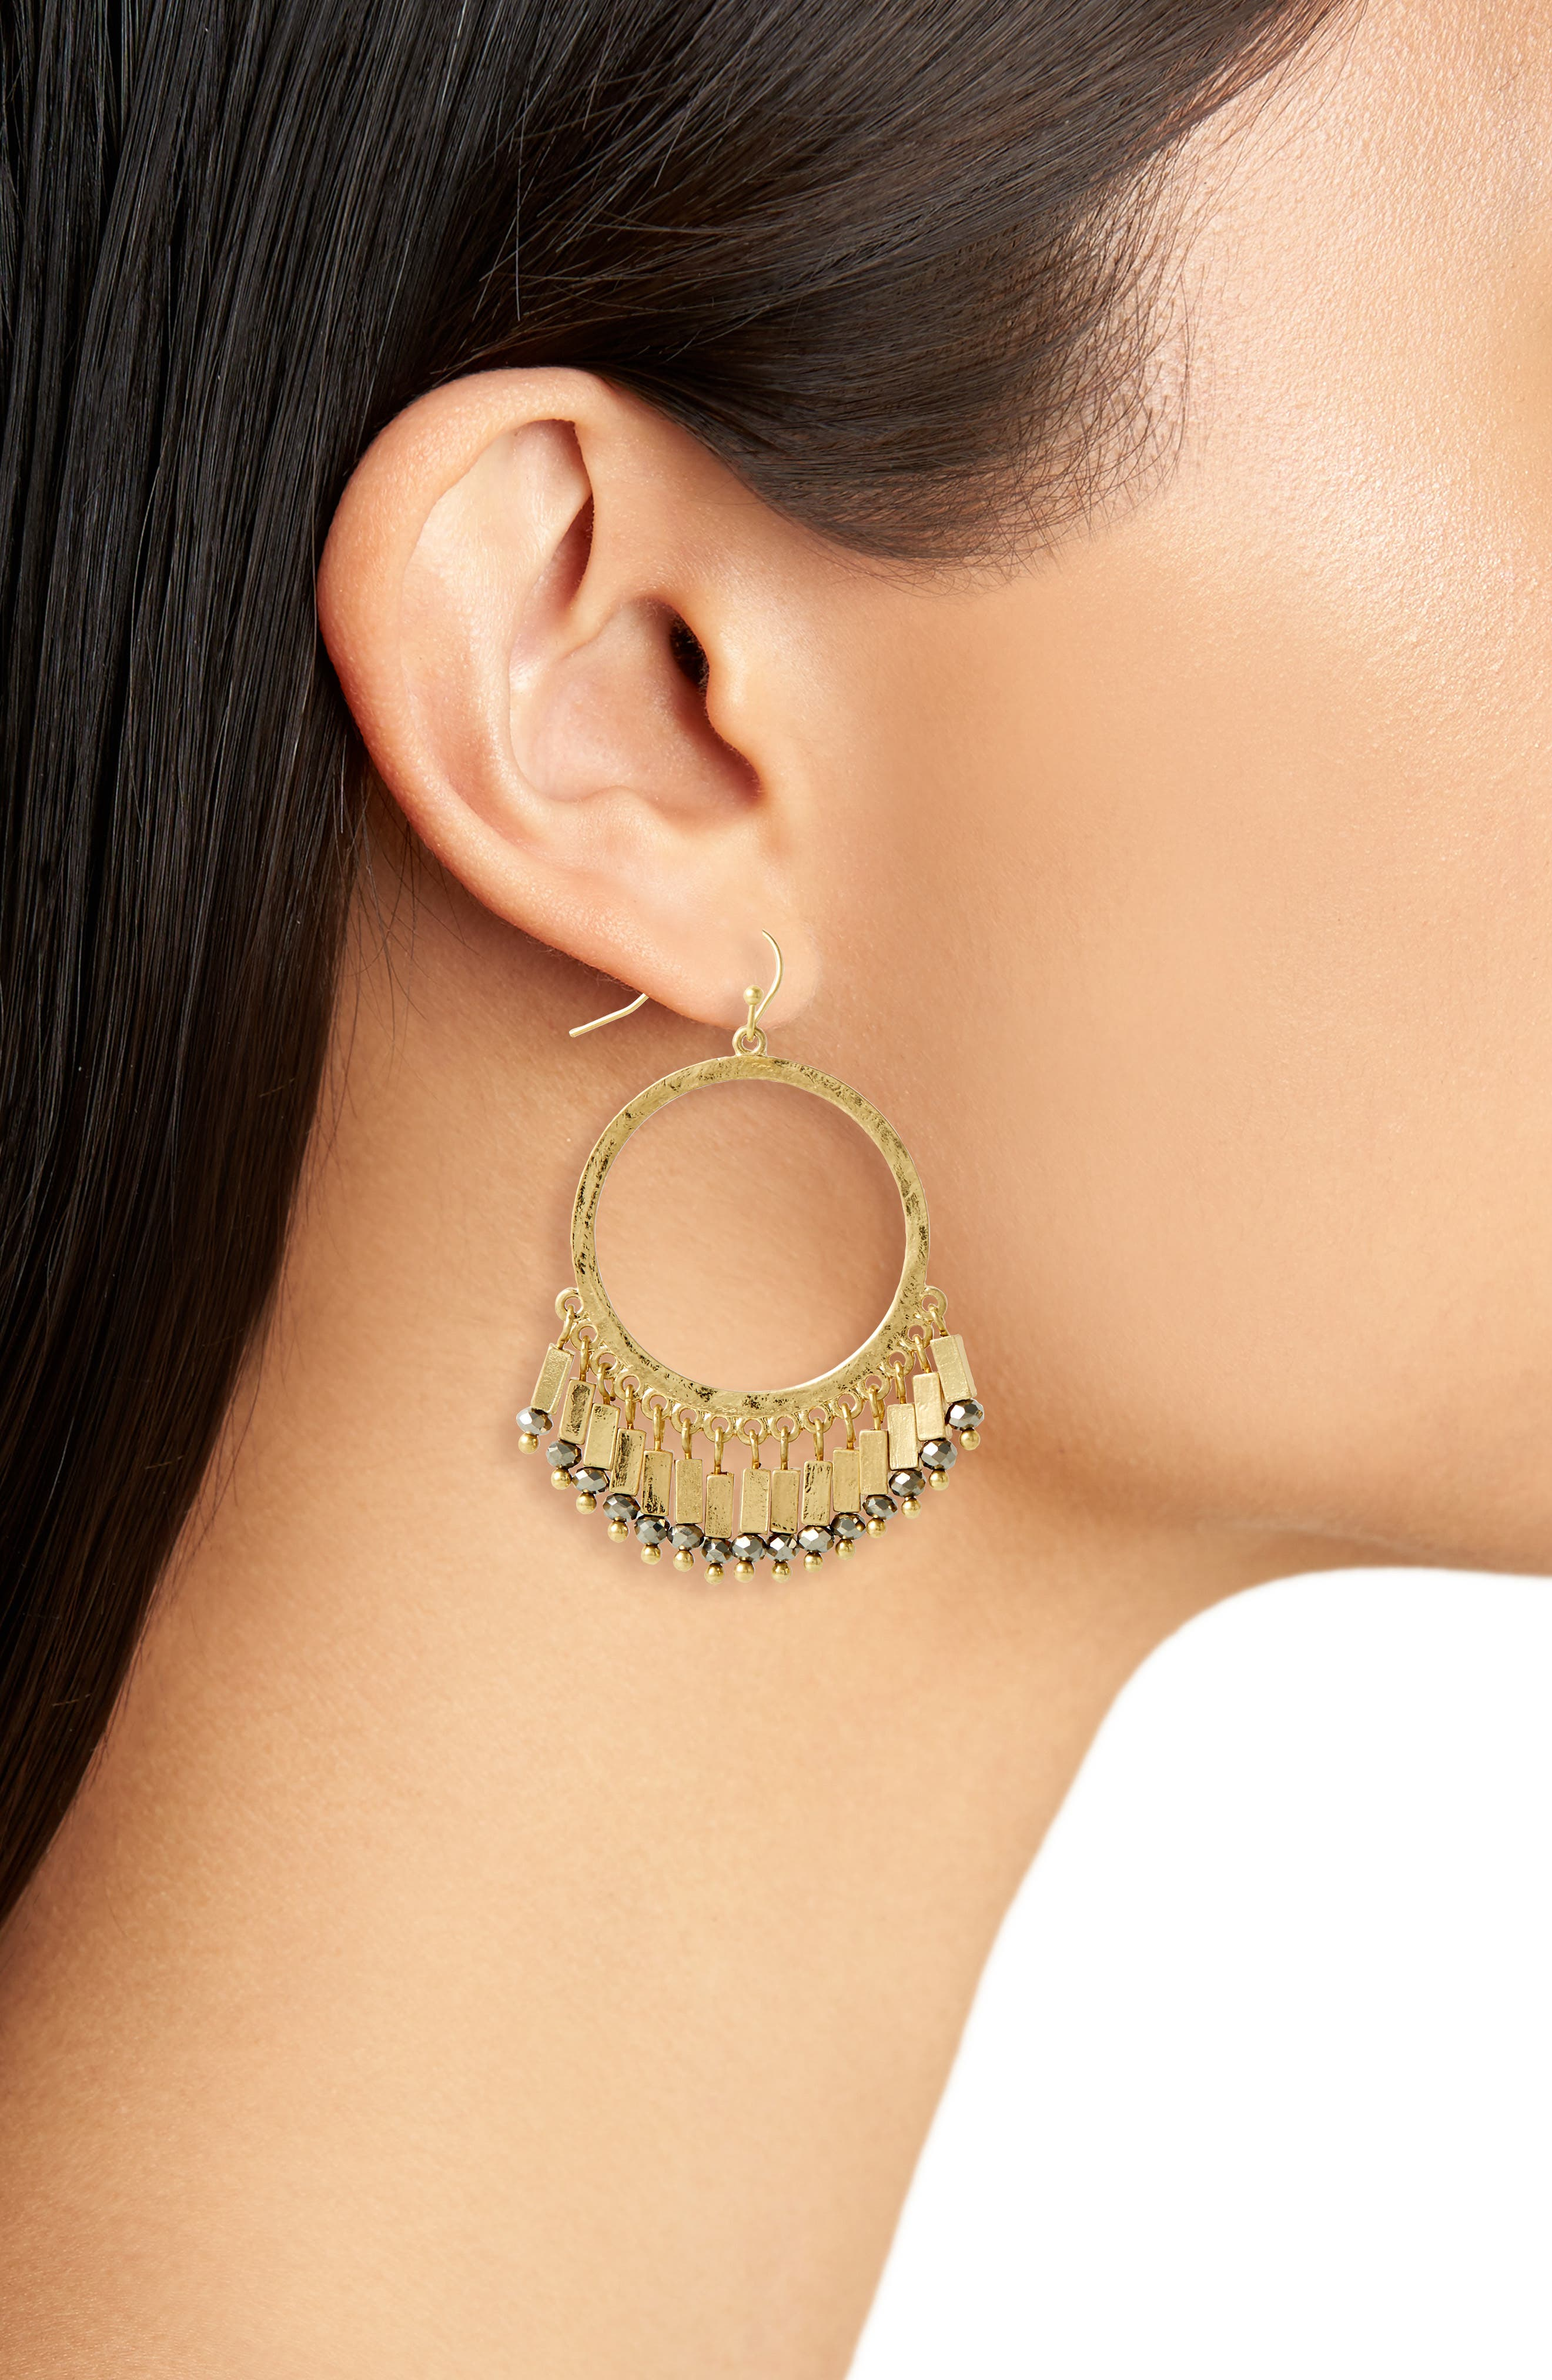 Beaded Hoop Earrings,                             Alternate thumbnail 2, color,                             710